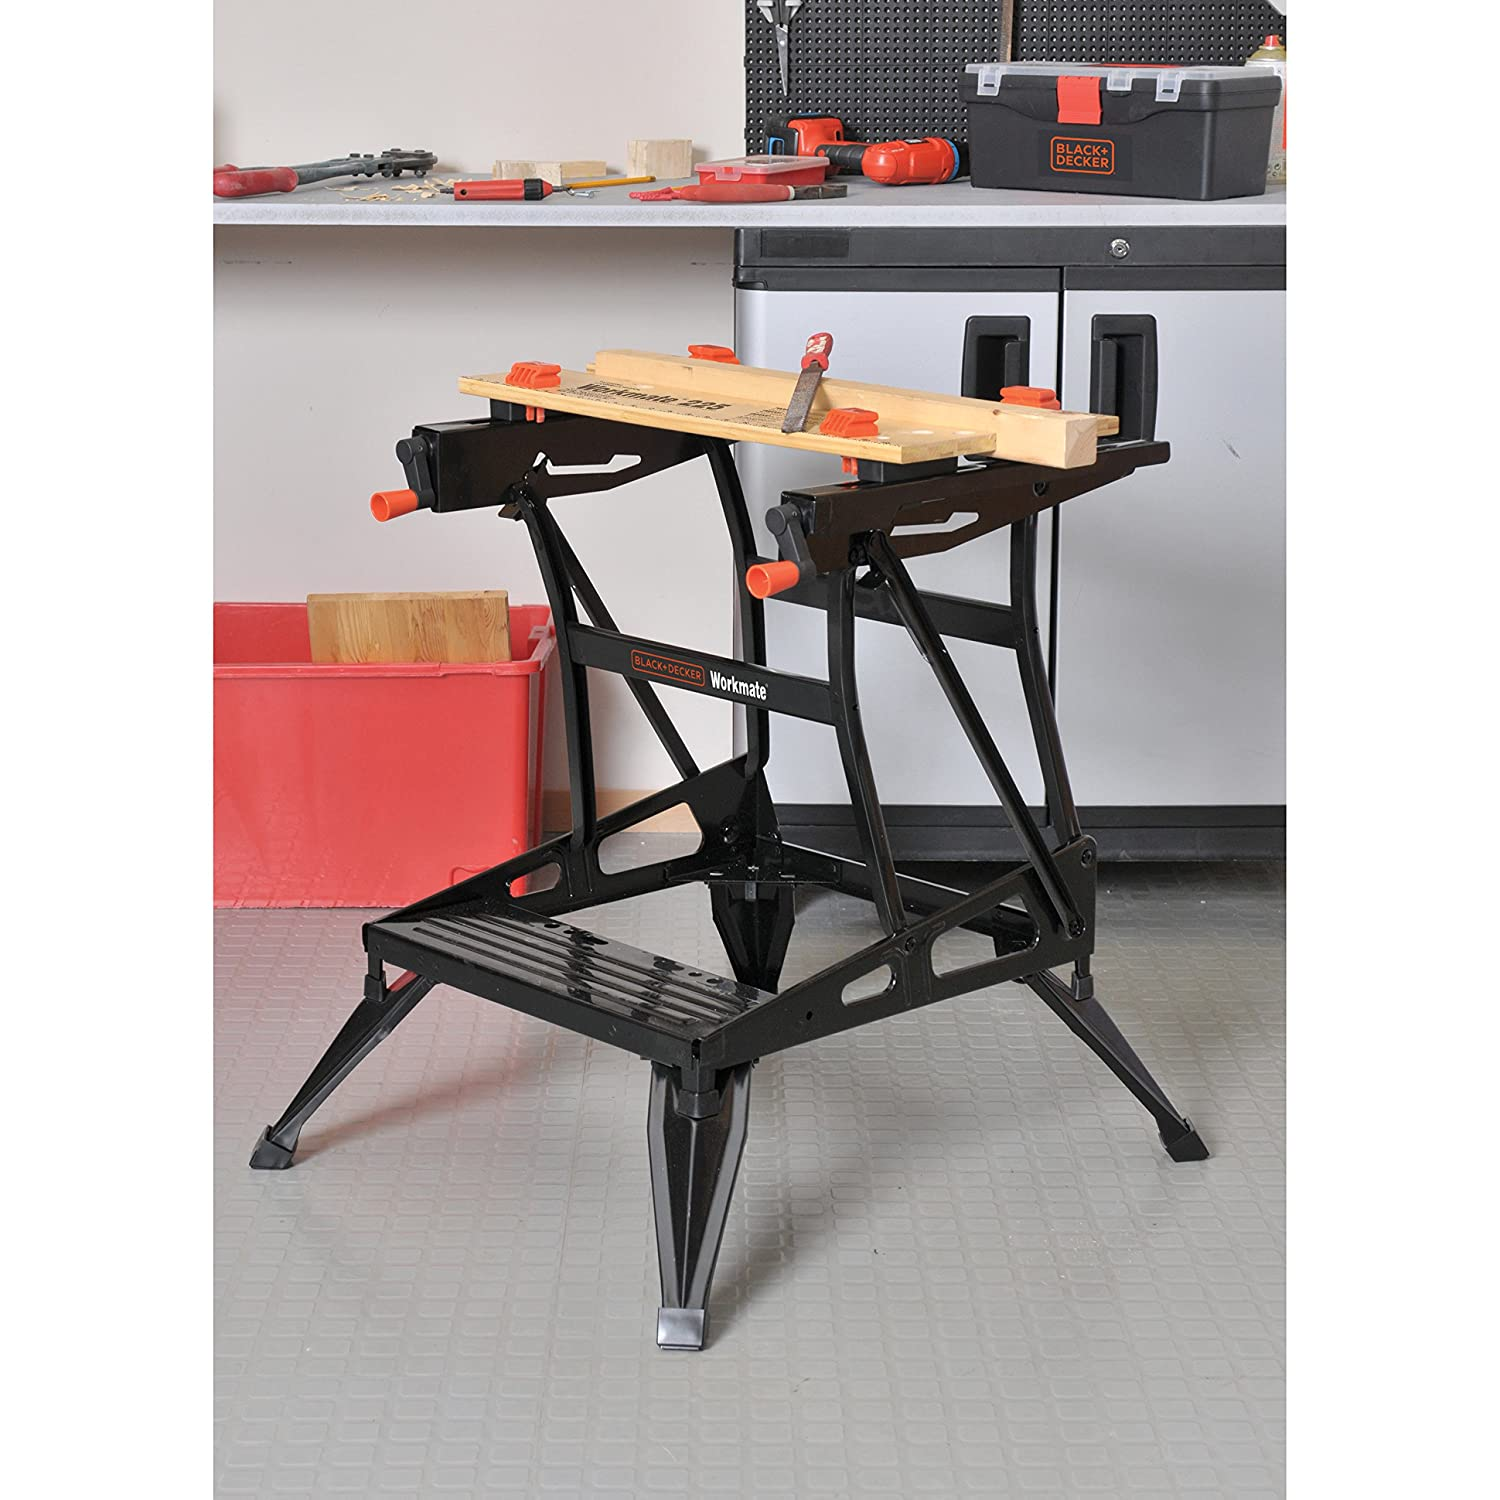 Black and decker workmate 1000 review - Black Decker Wm225 Workmate 225 450 Pound Capacity Portable Work Bench Workbenches Amazon Com